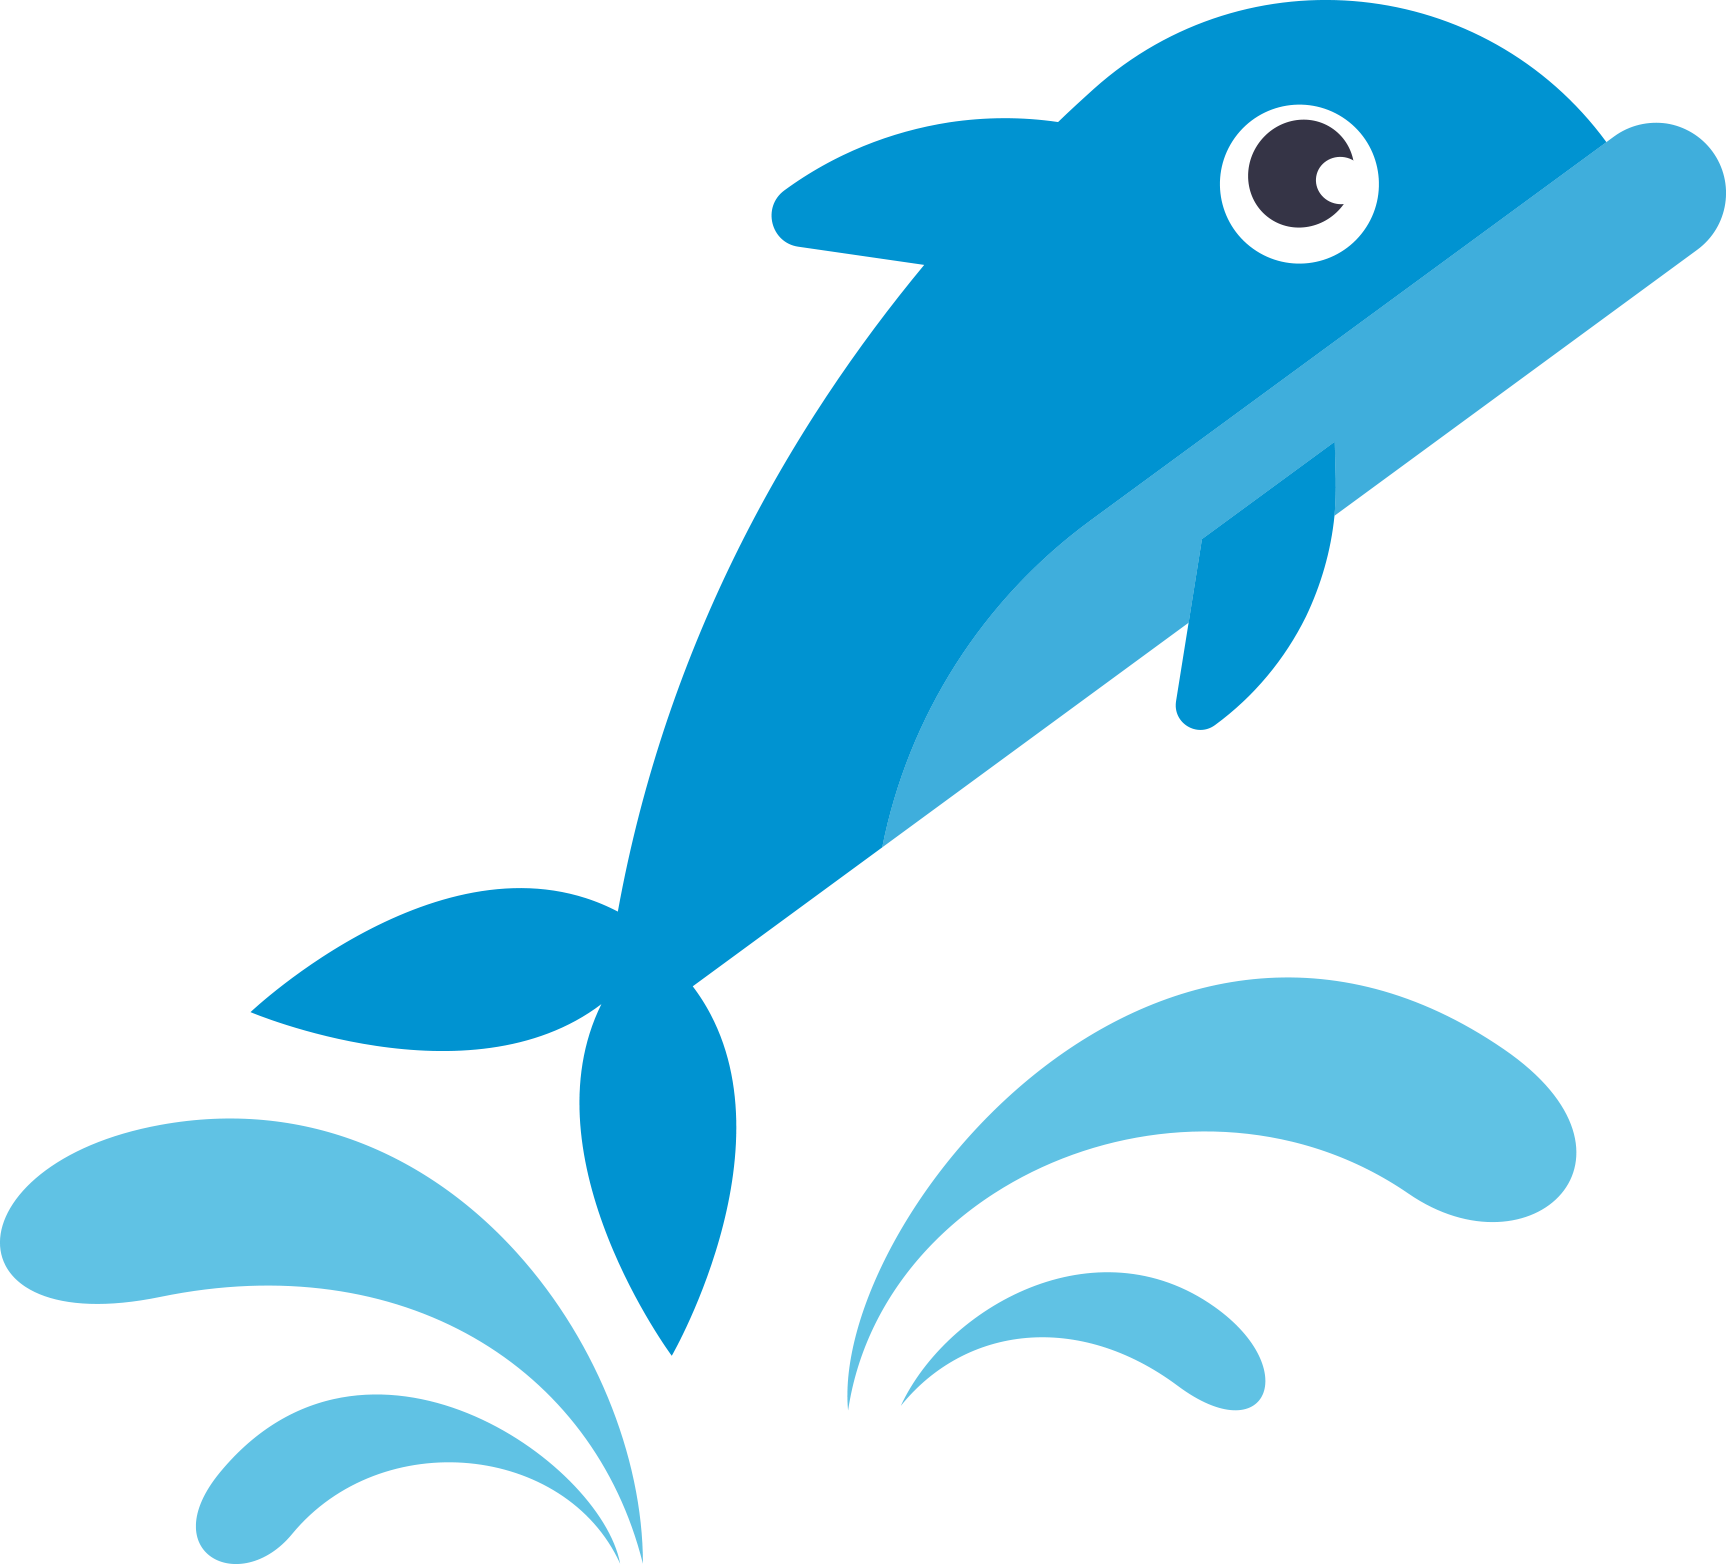 Dolphins years swim school. Dolphin clipart dolphin face